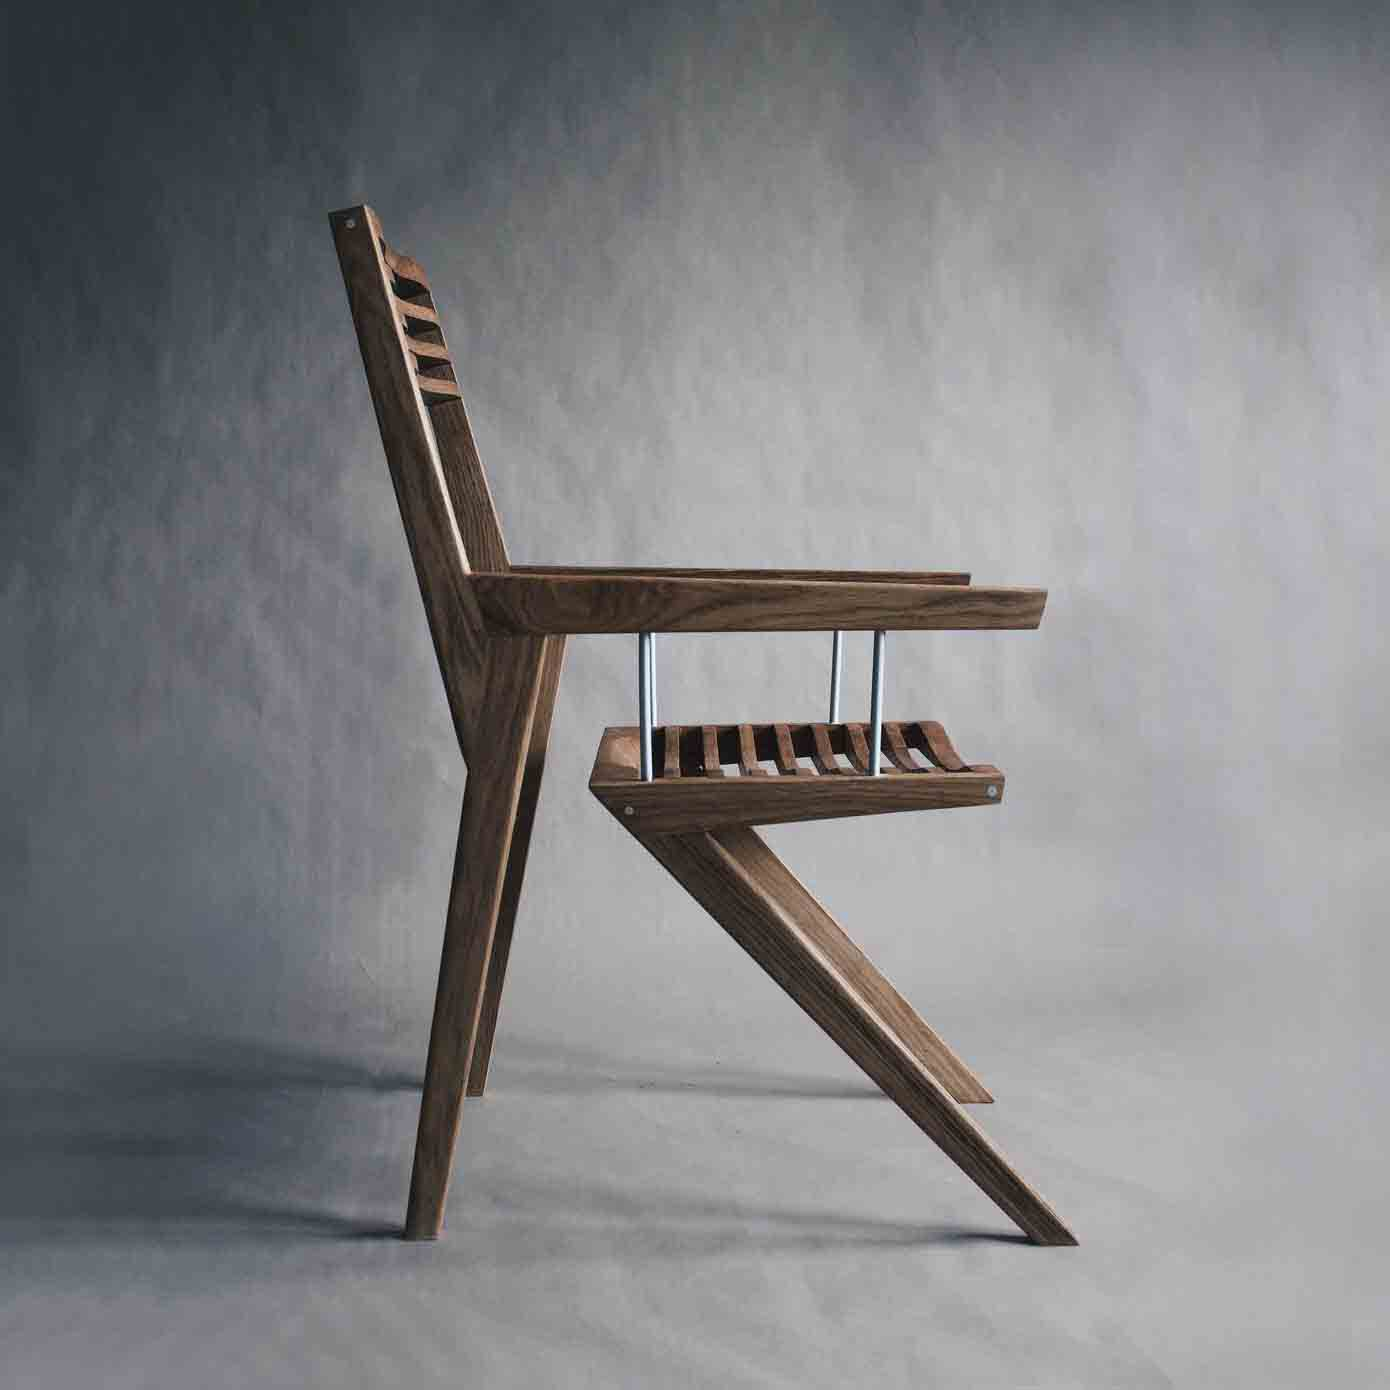 Bivalvia chair